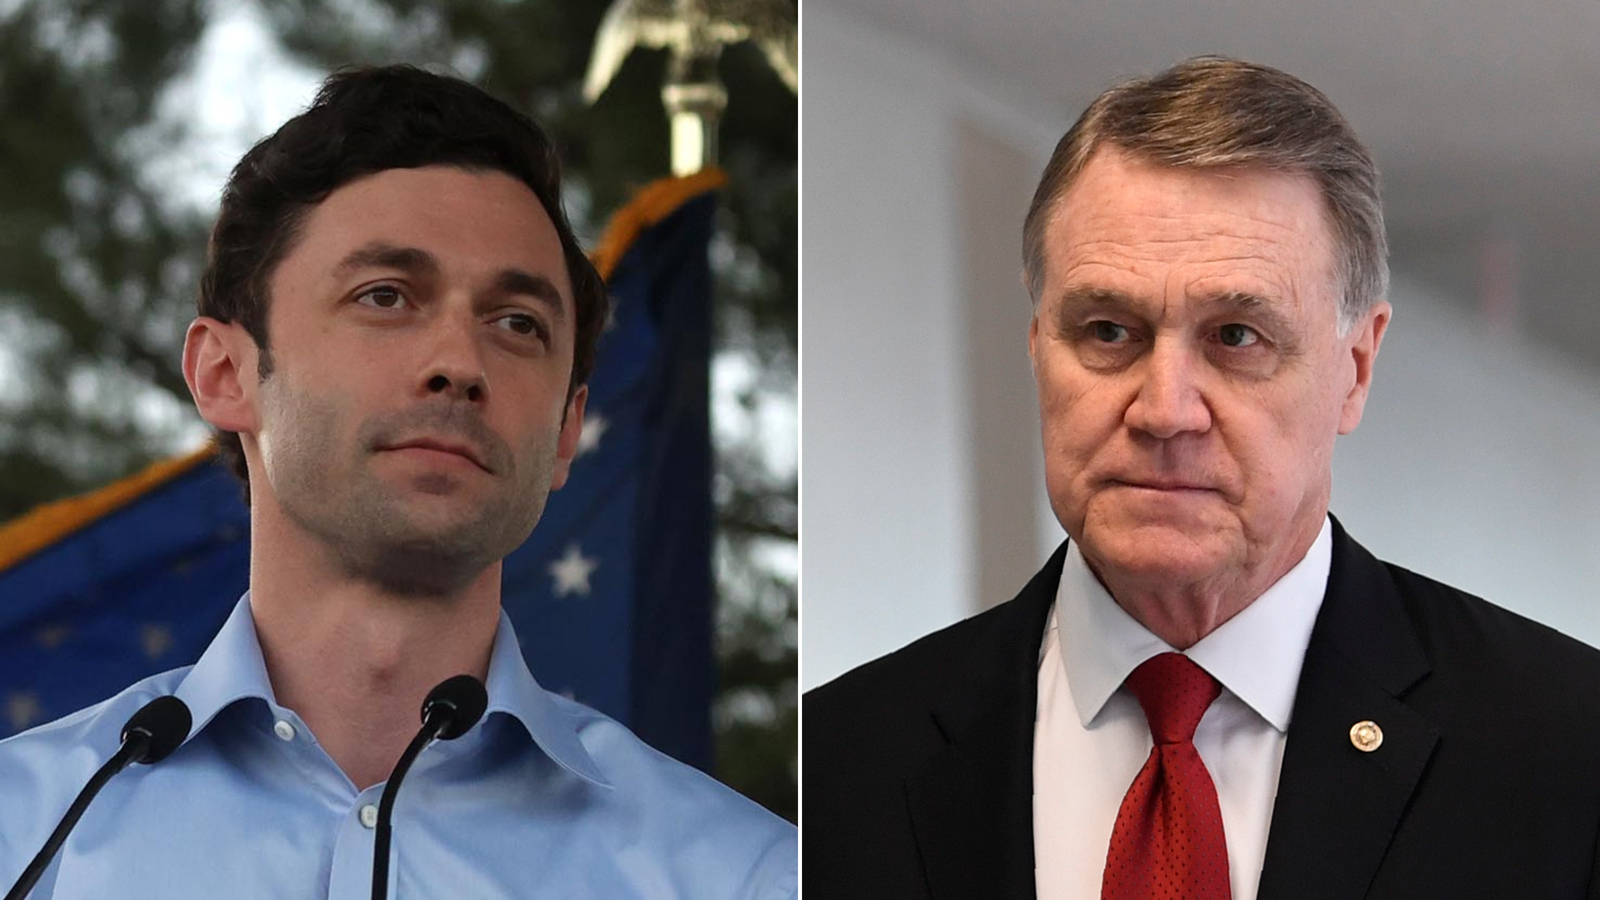 Georgia reports more than 940,000 absentee ballot requests for Senate runoff